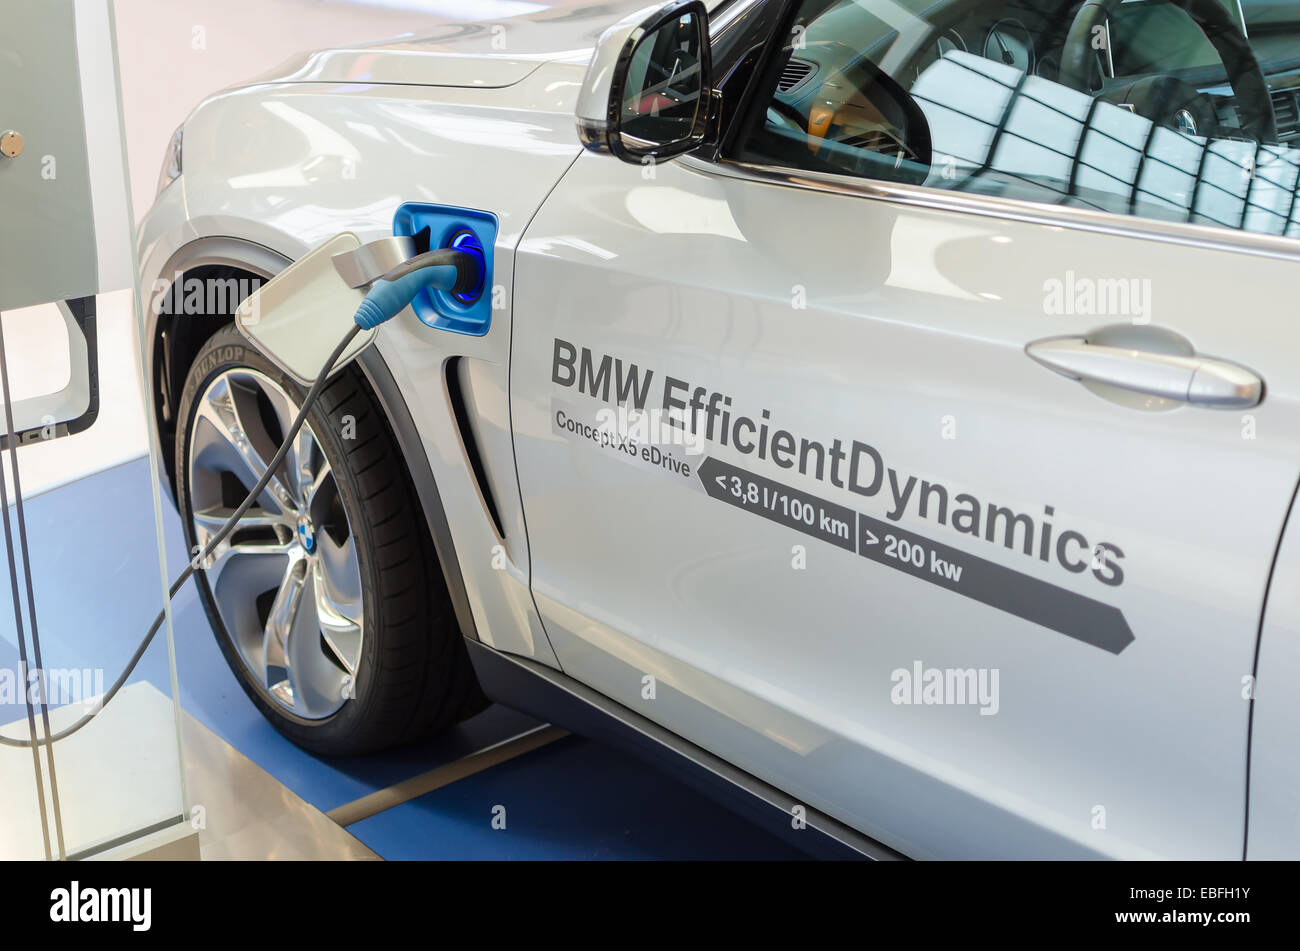 New Model Of Environmentally Friendly Electric Car Bmw X5 With